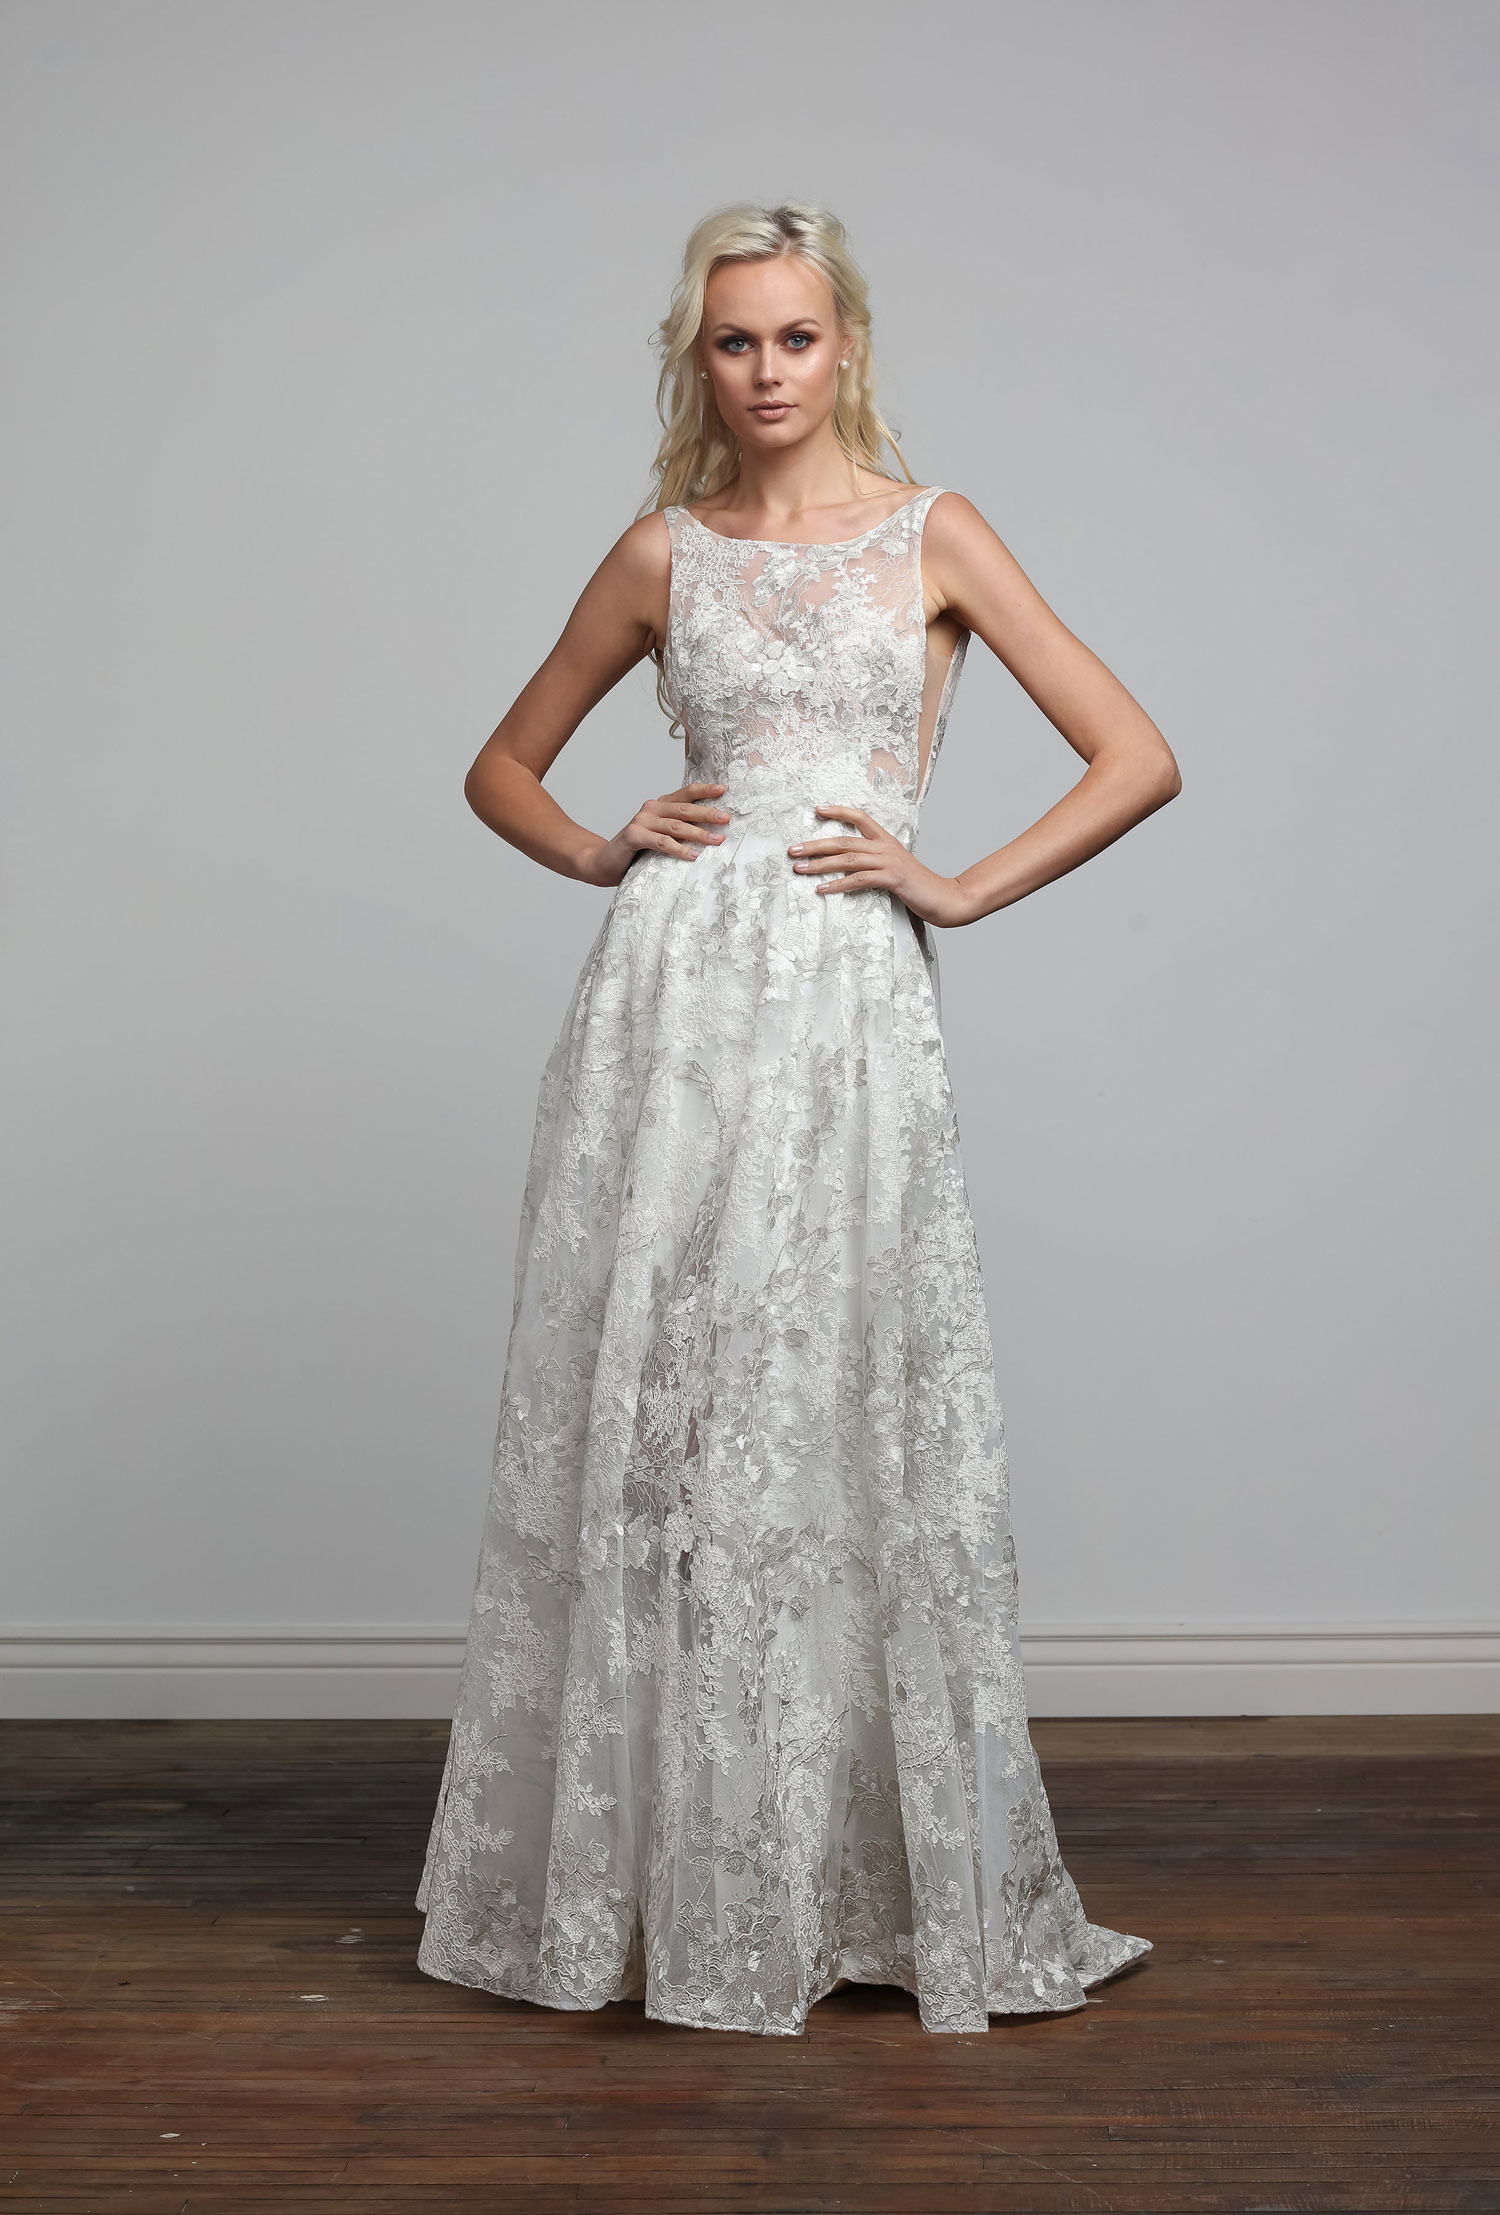 Clarissa bridal gown wedding dress from the Joy Collection by Barbara Kavchok spring 2018